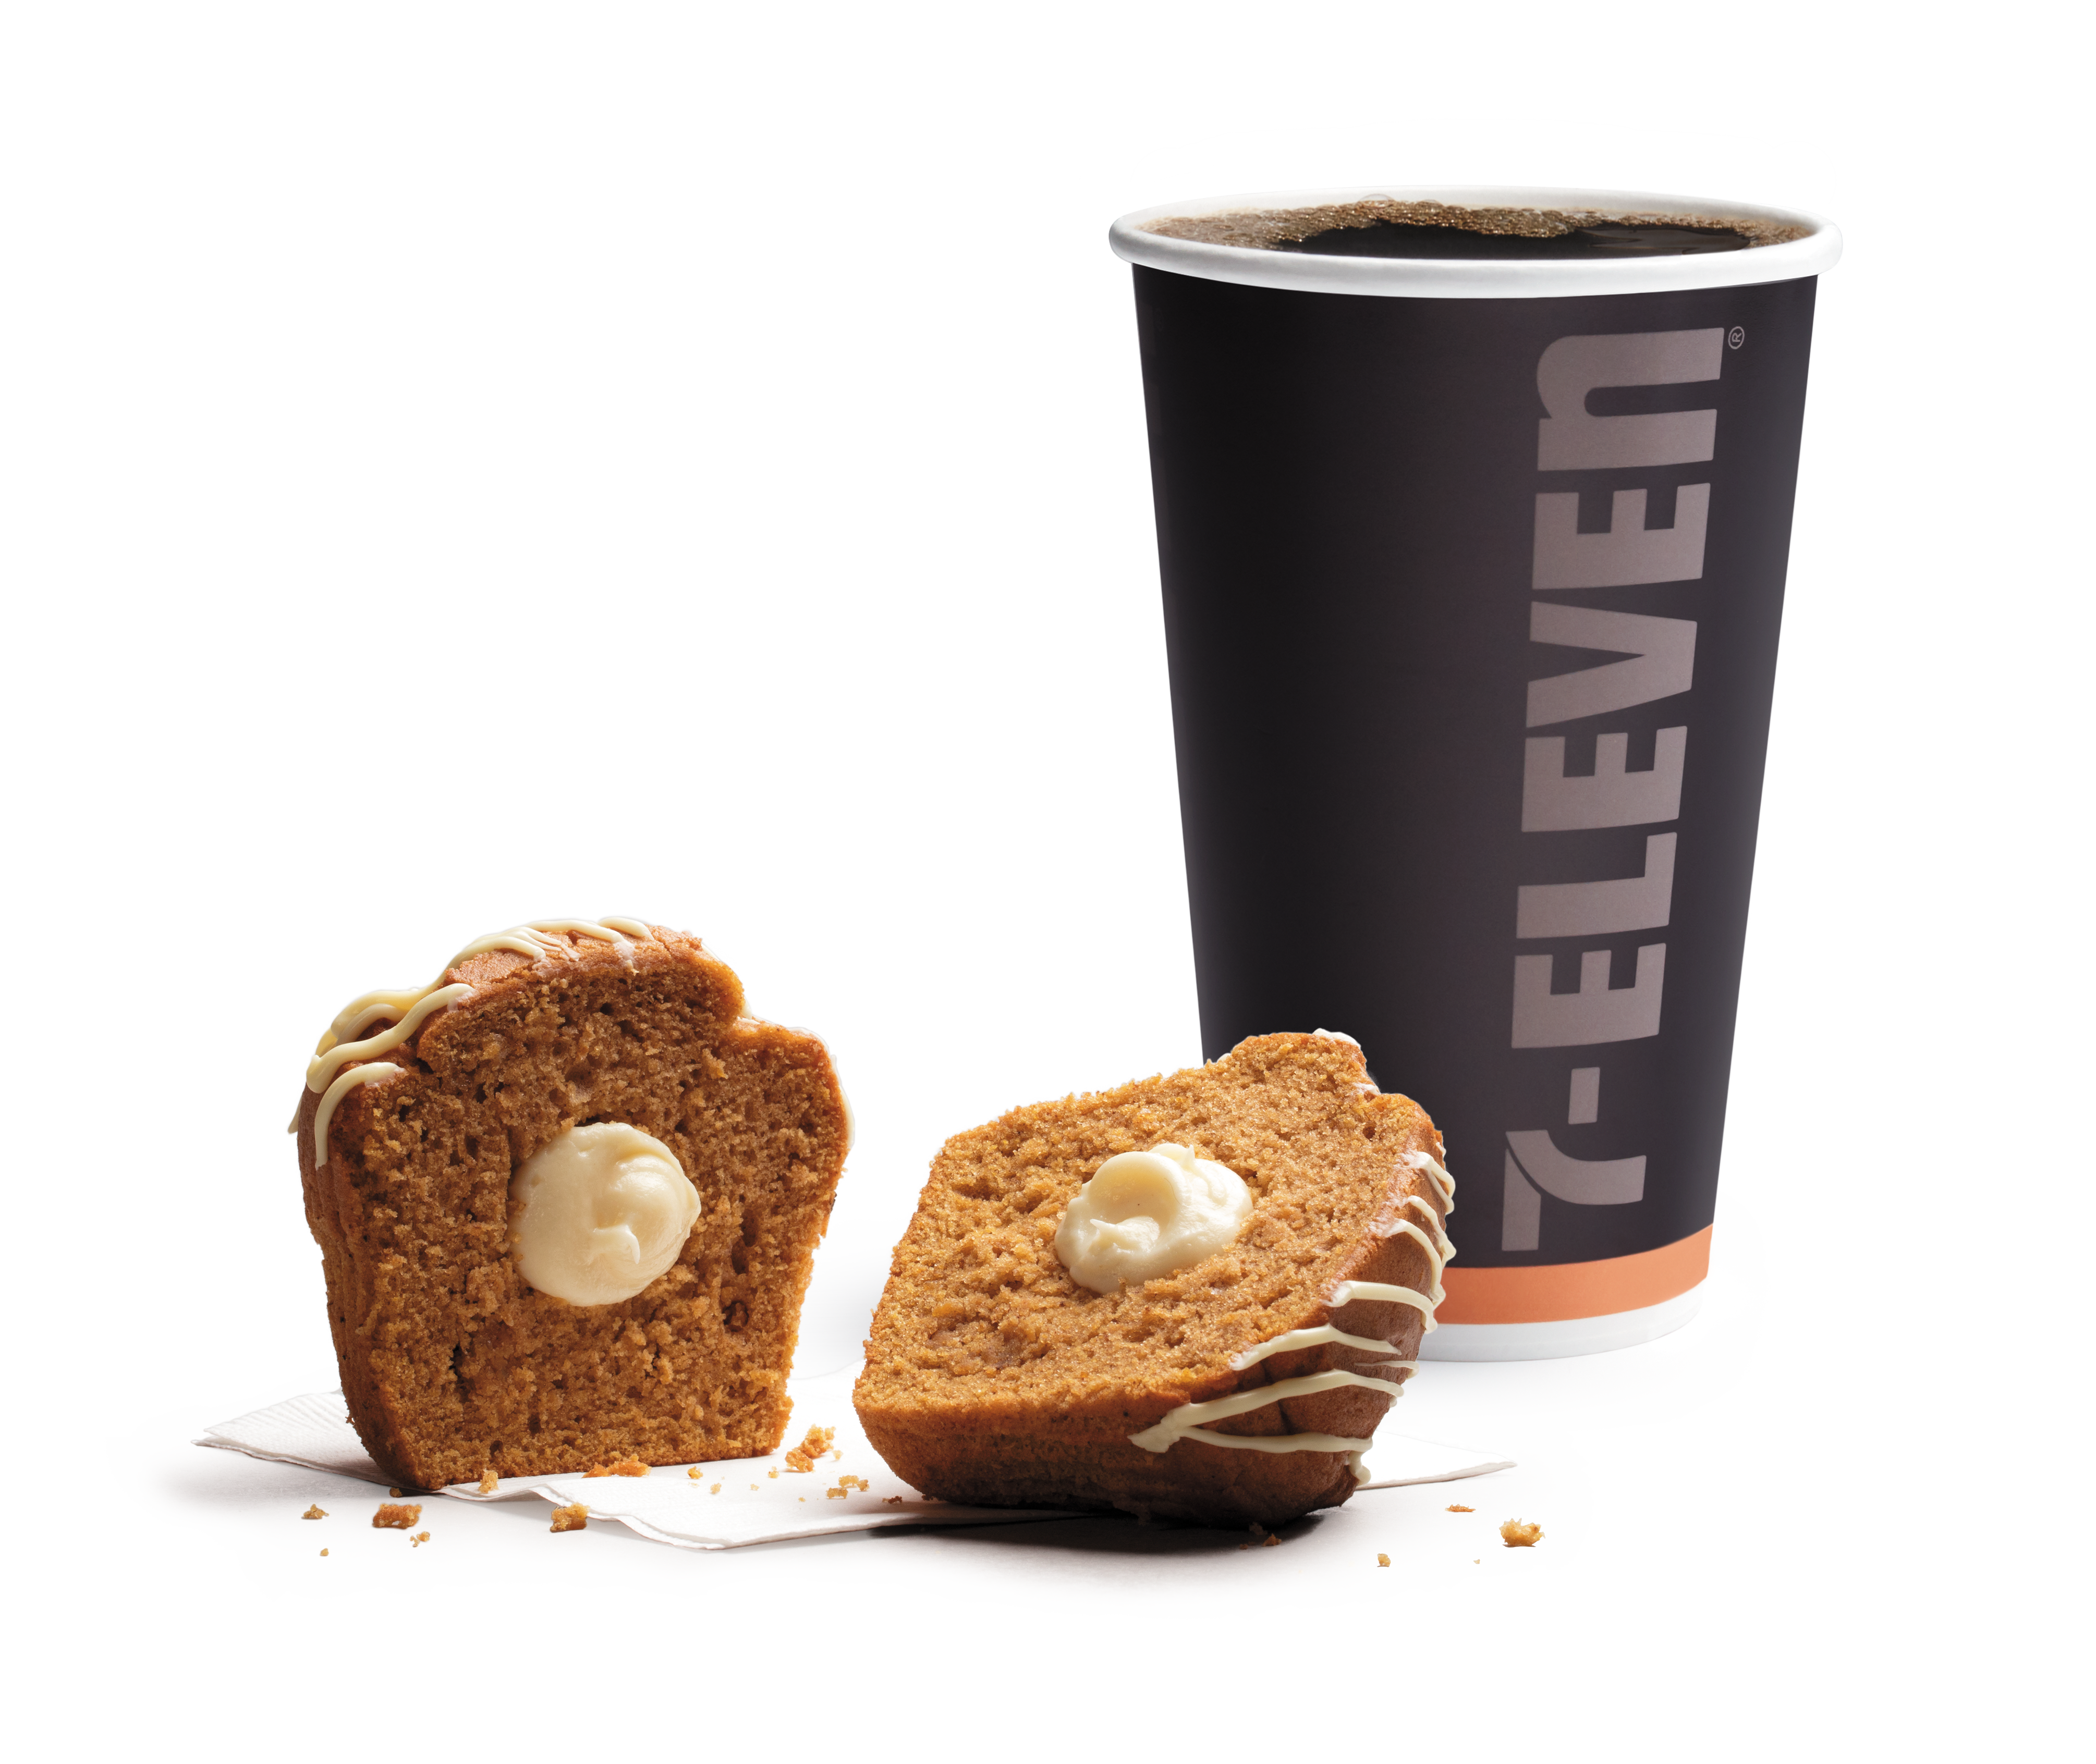 v2-7-Eleven-Free-Coffee-with-Muffin-member-rewards.png